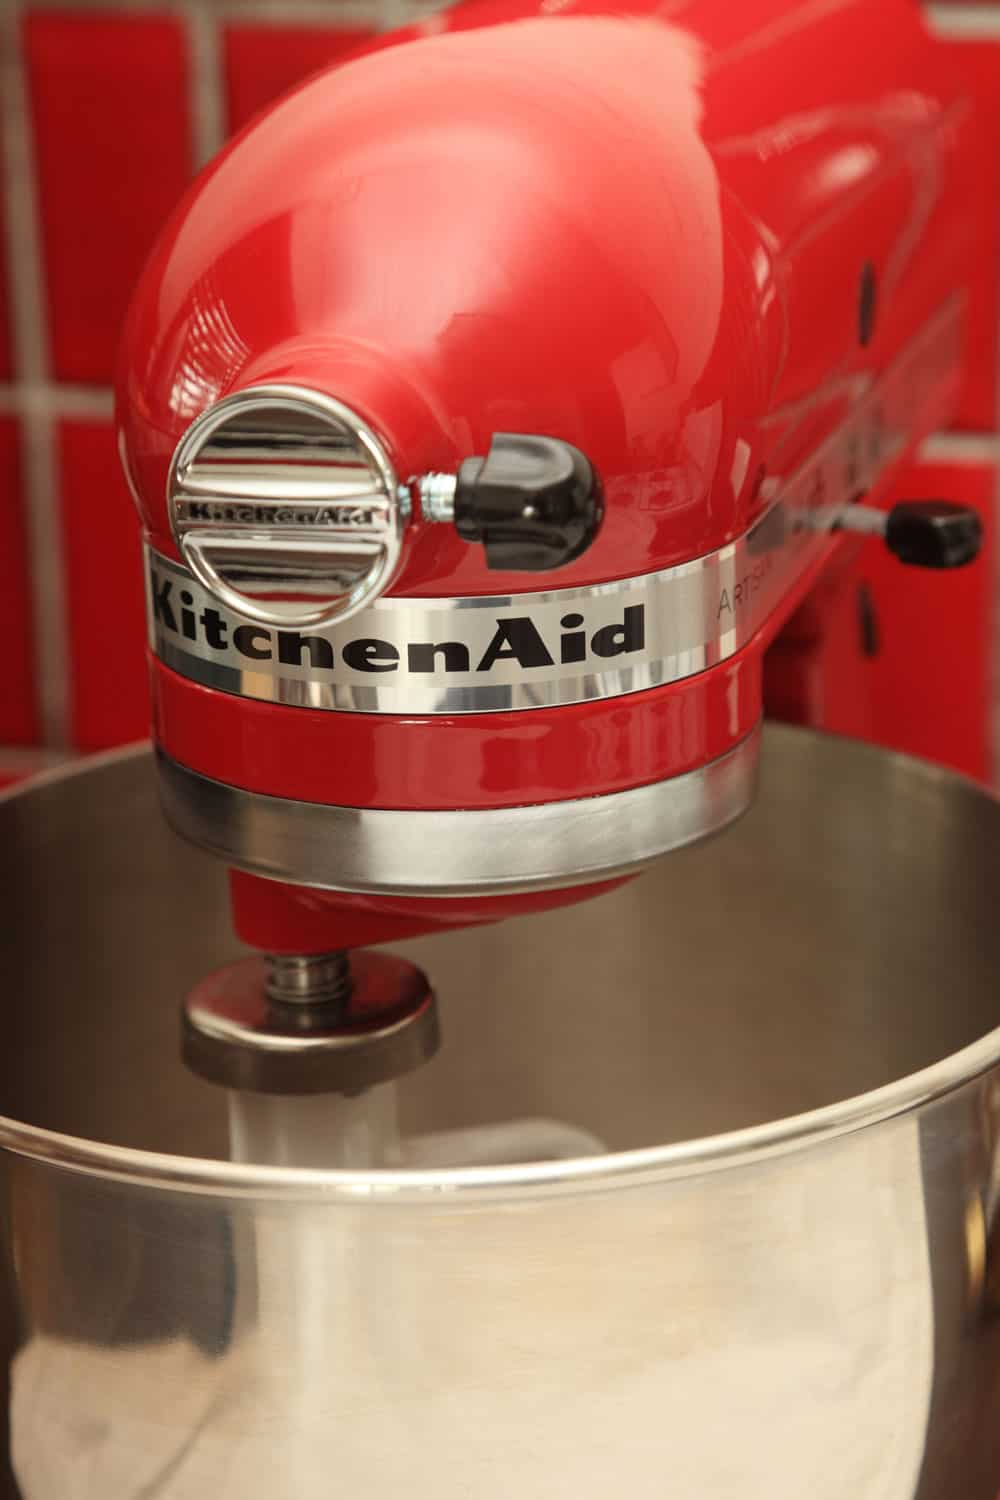 Empire Red coloured Kitchenaid Artisan Stand Mixer, angled front view on red tiled background with flat beater attachment and bowl